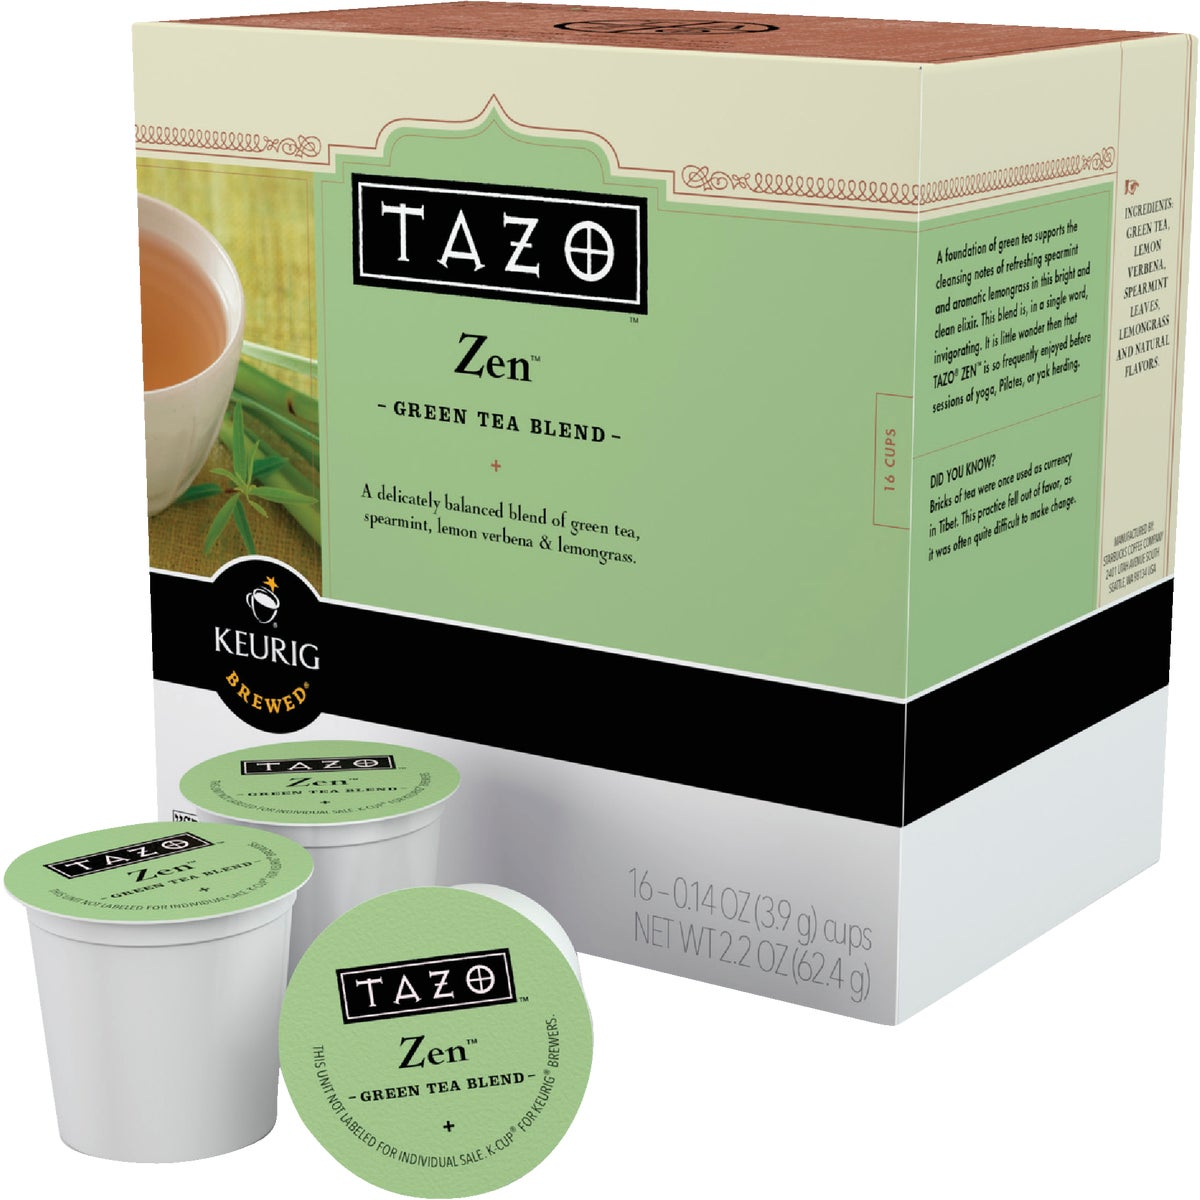 16CT TAZO ZEN TEA K-CUP - 10519 by Keurig     M Block